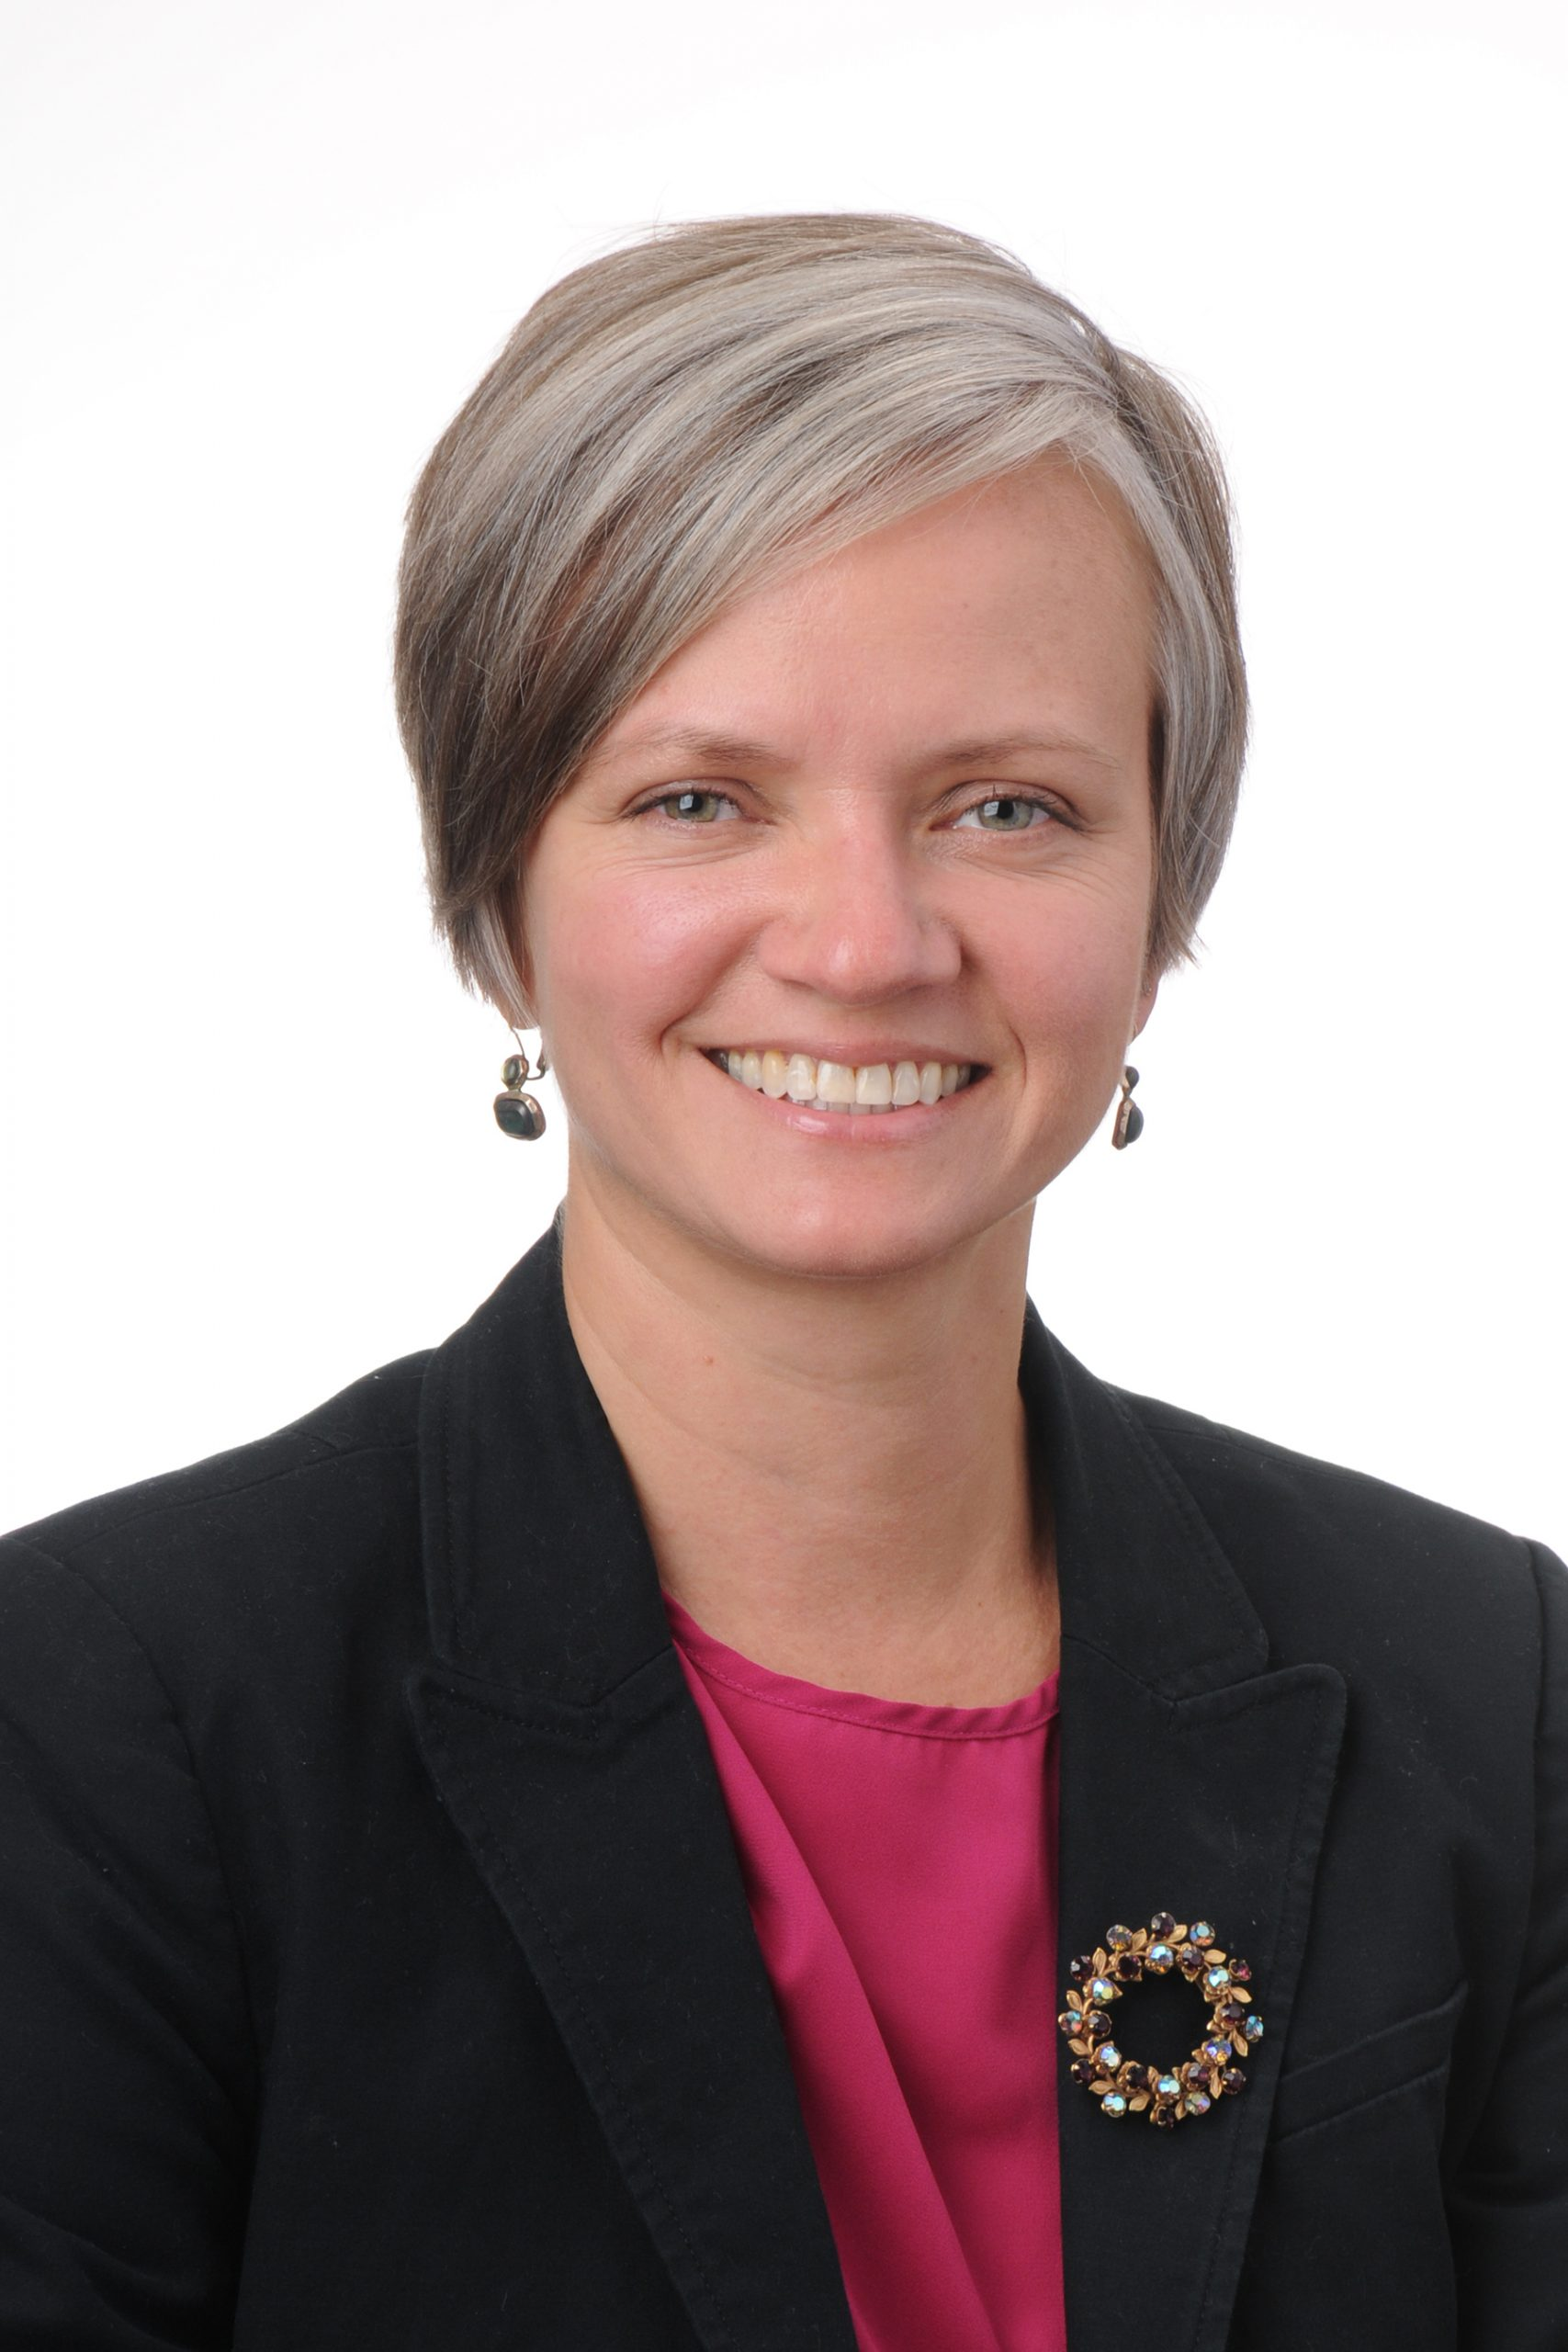 Leslie Whitlock Audiology & Hearing Care